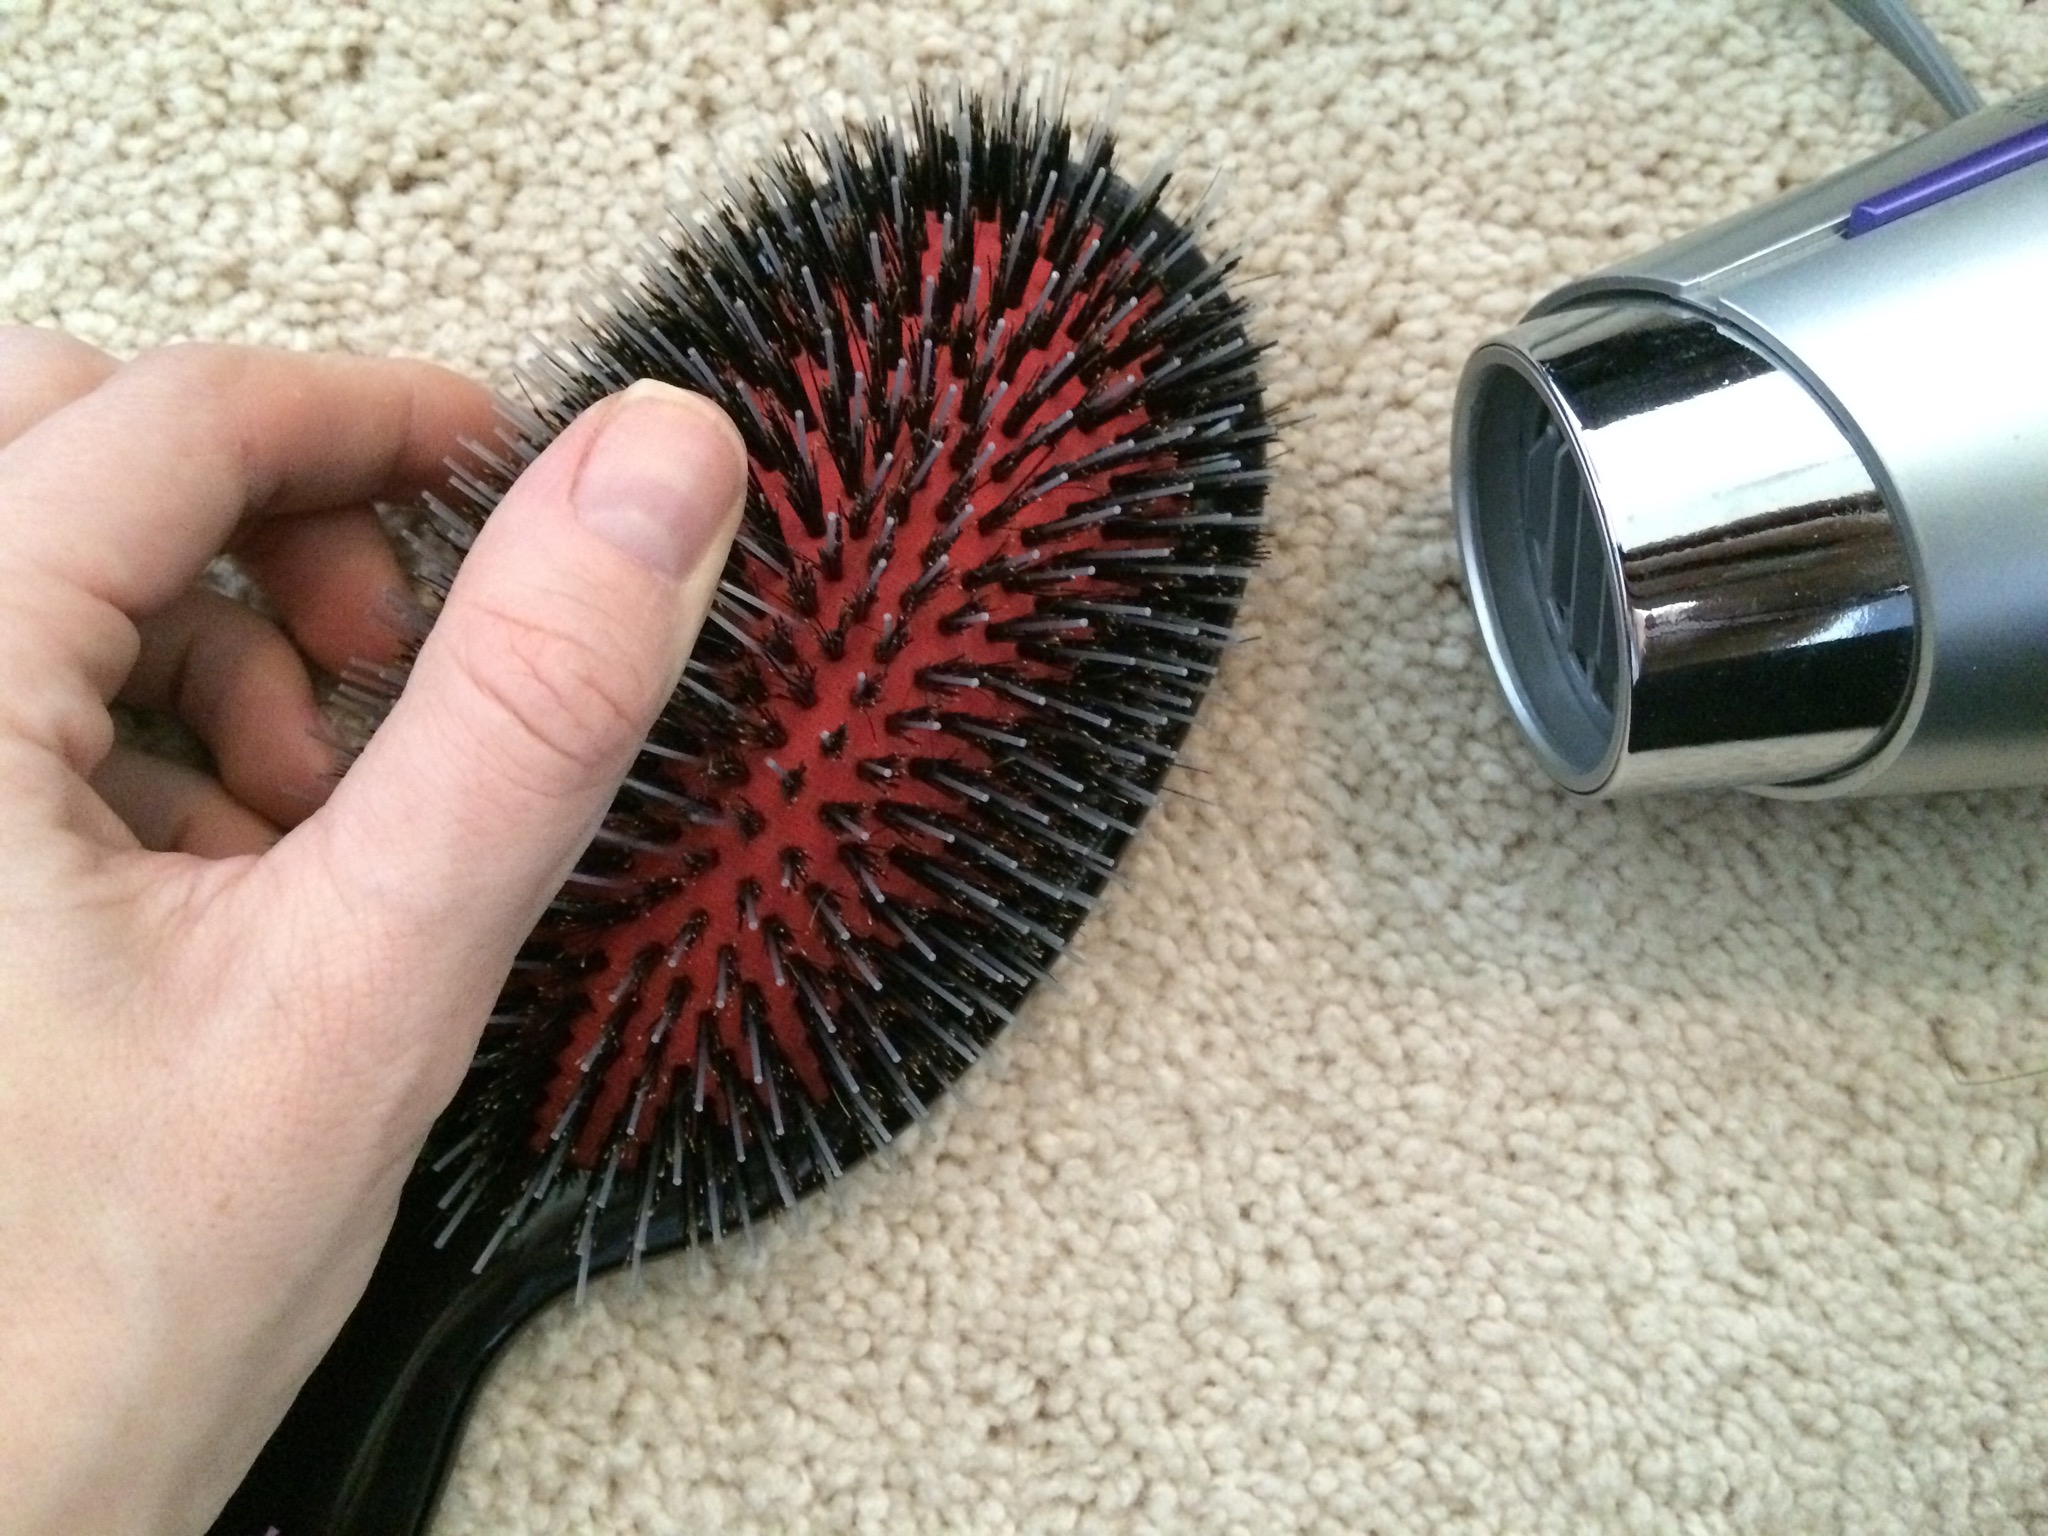 How To: Reshape the CASHMERE HAIR Brush Bristles